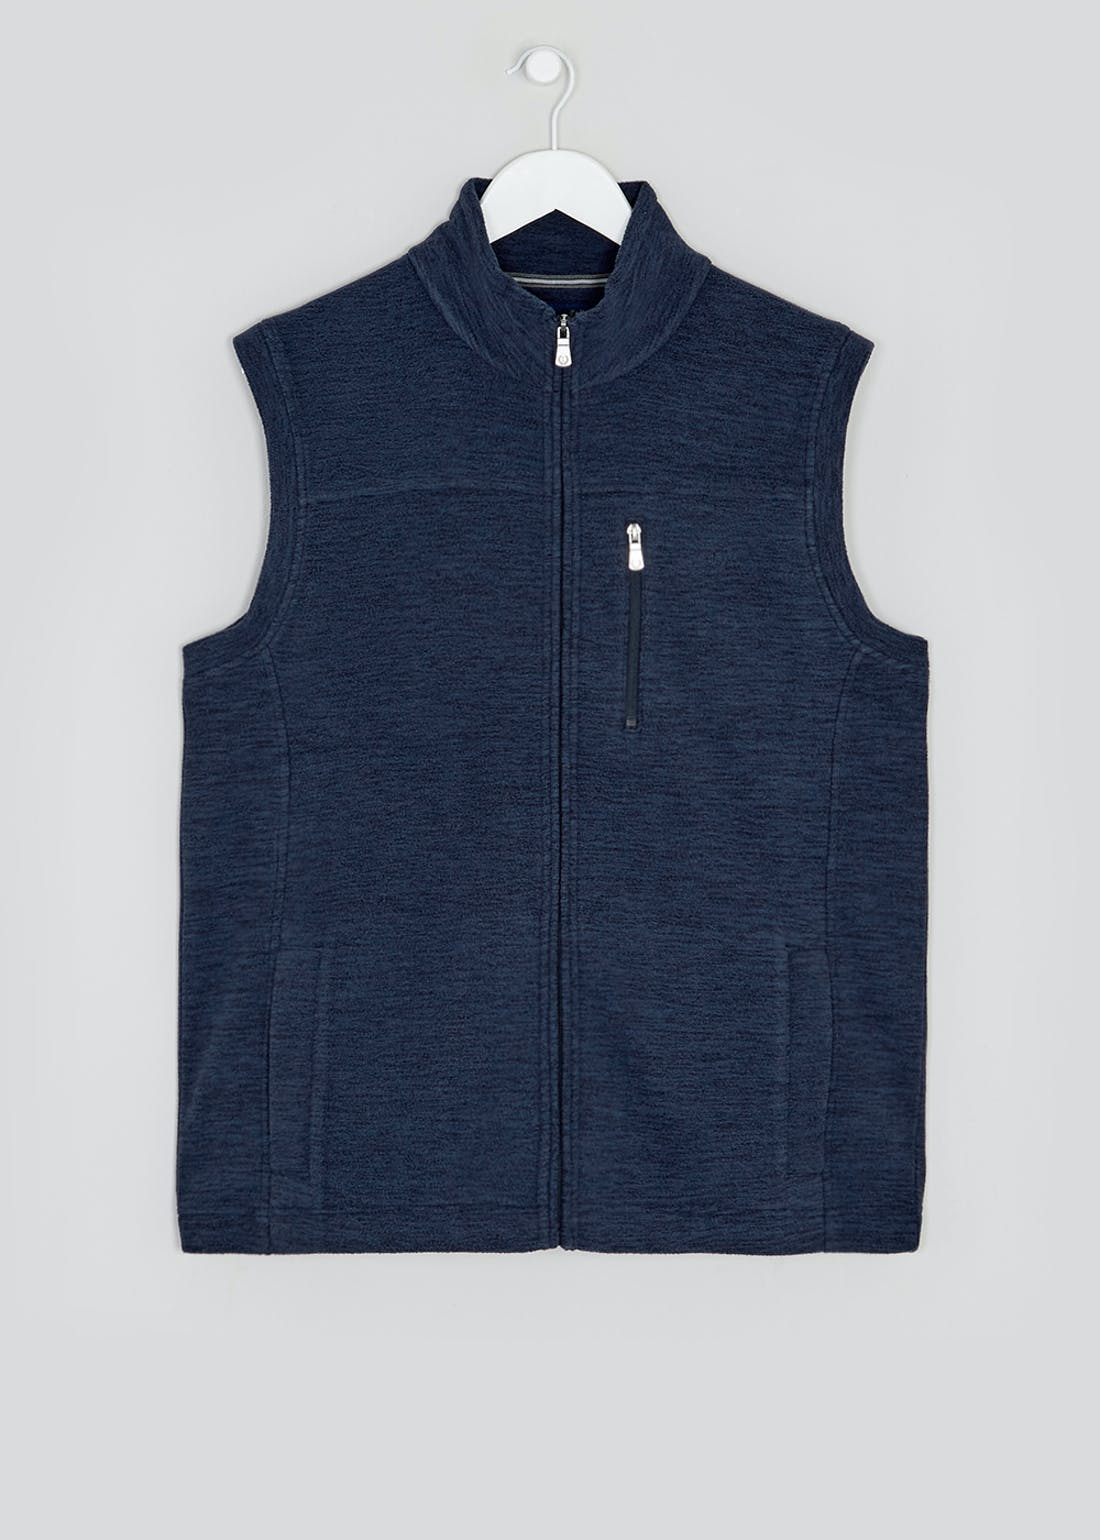 Lincoln Active Navy Fleece Gilet